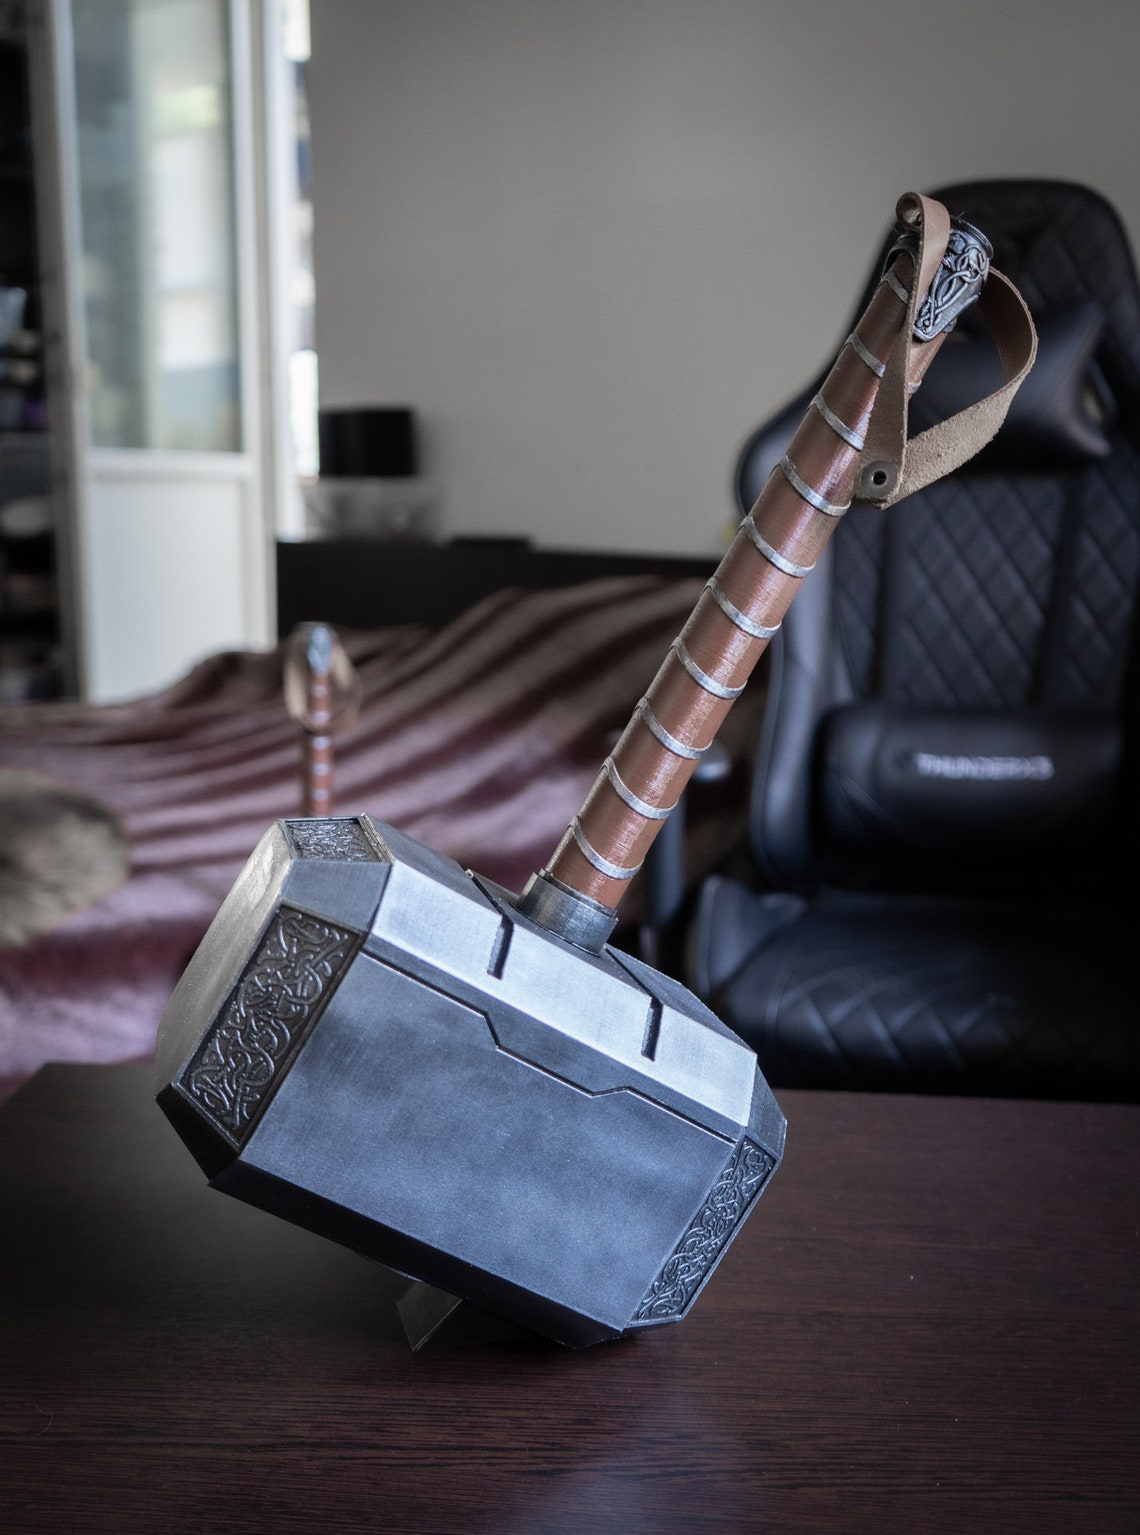 Thor Hammer  Hammer of Thor Cosplay Prop  Life Size image 1